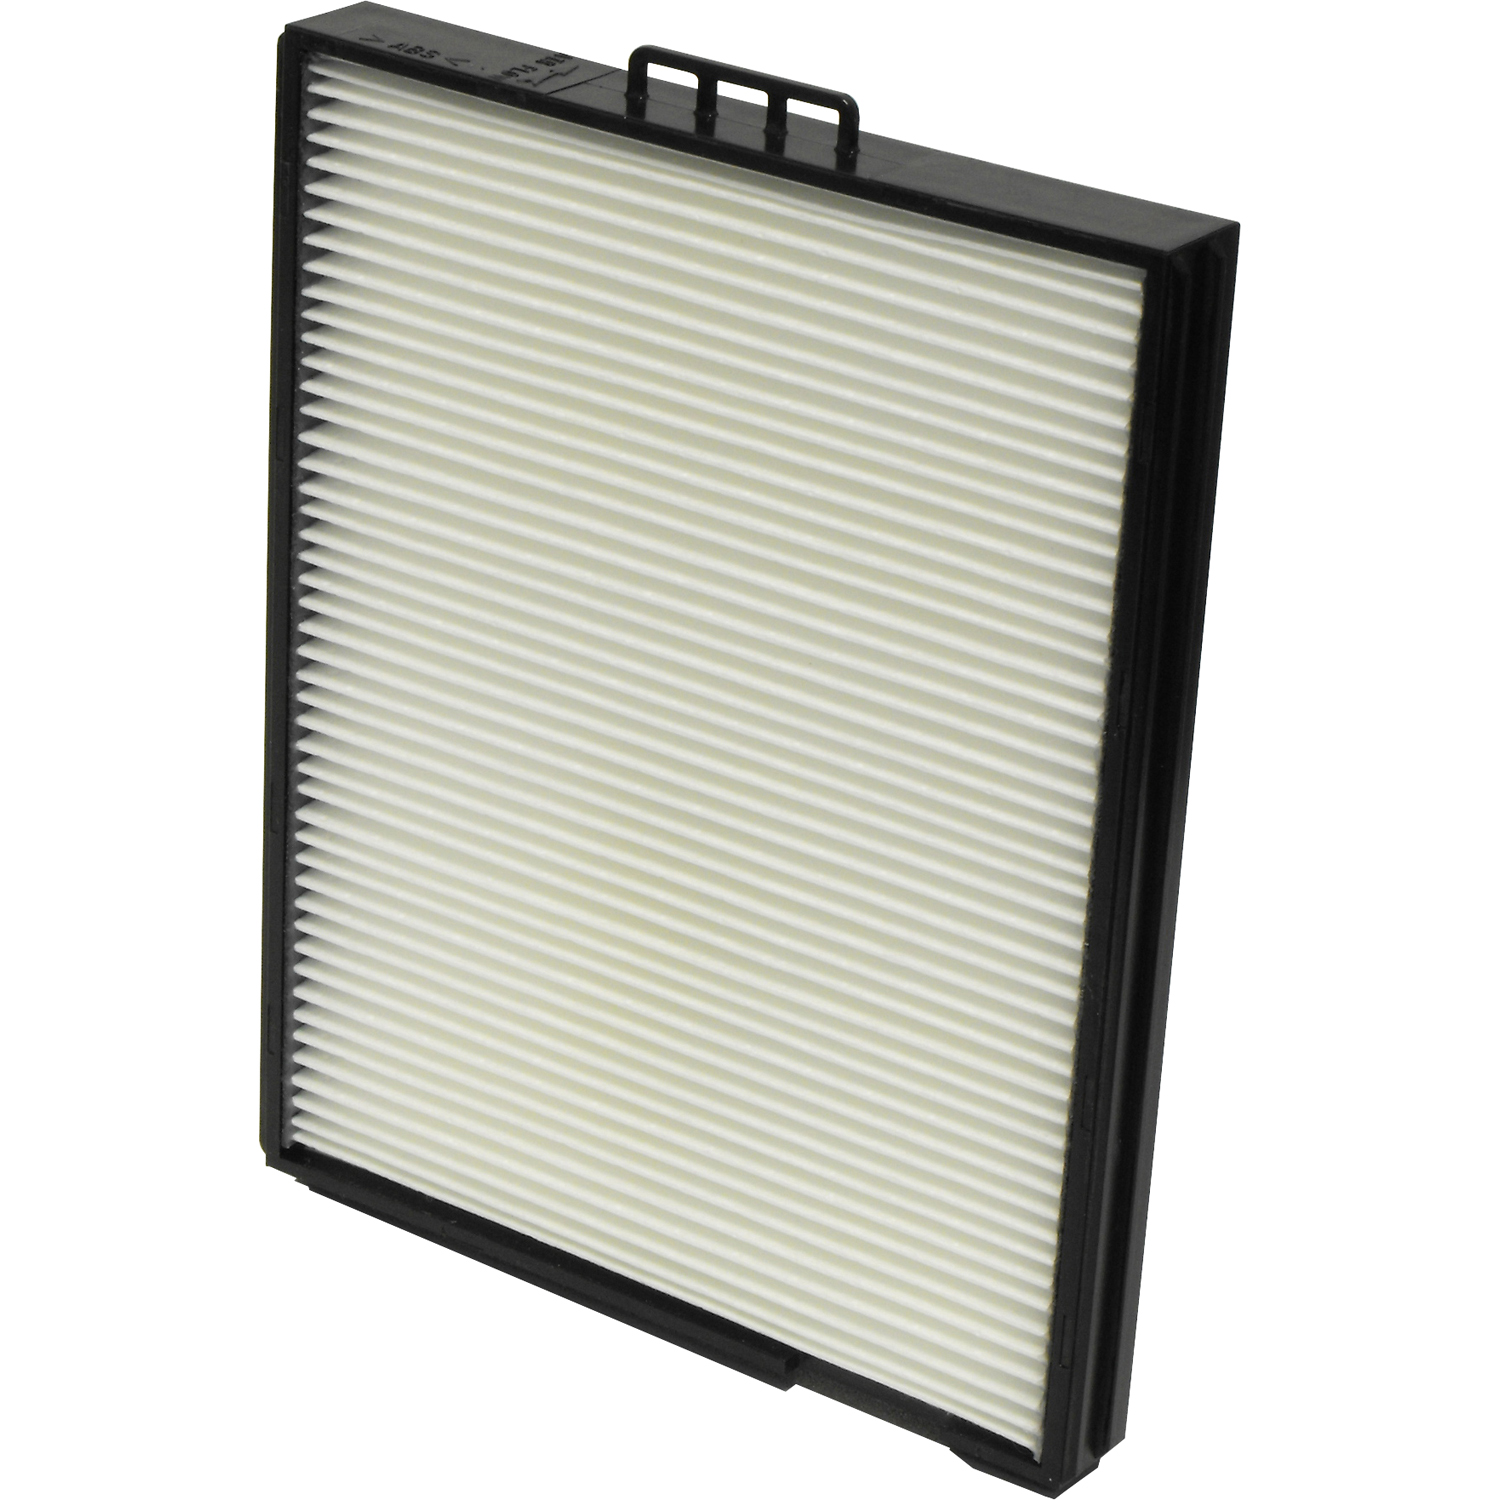 Particulate Cabin Air Filter HYUN ACCENT 02-01